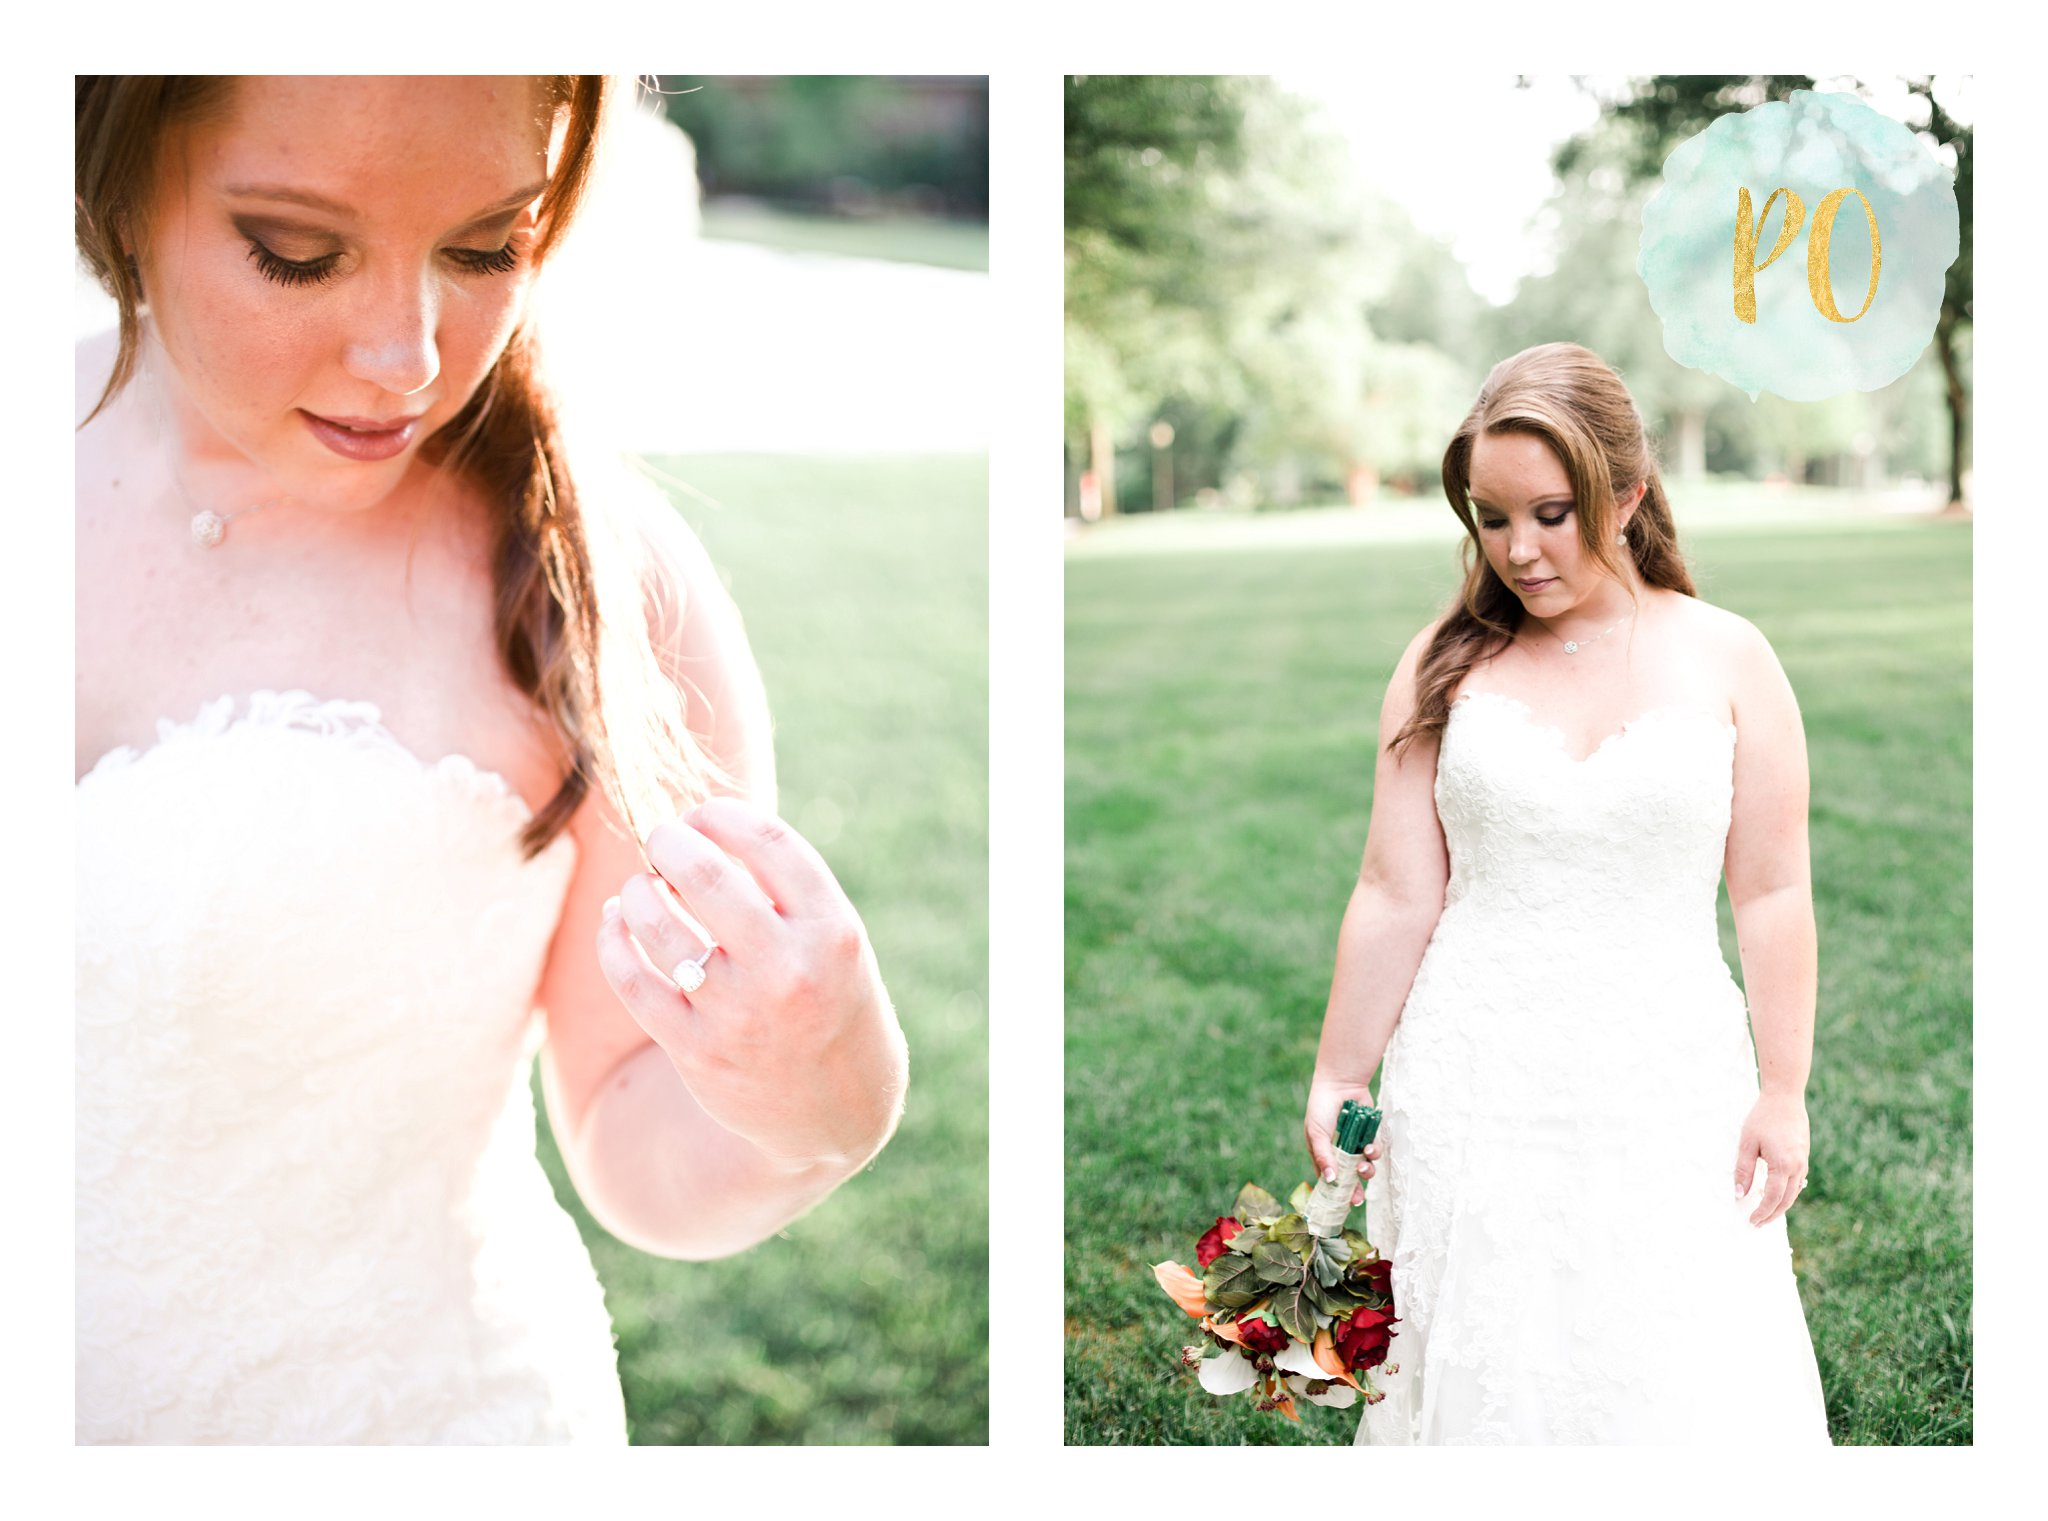 furman-bridal-portrait-greenvile-sc-photos_0020.jpg